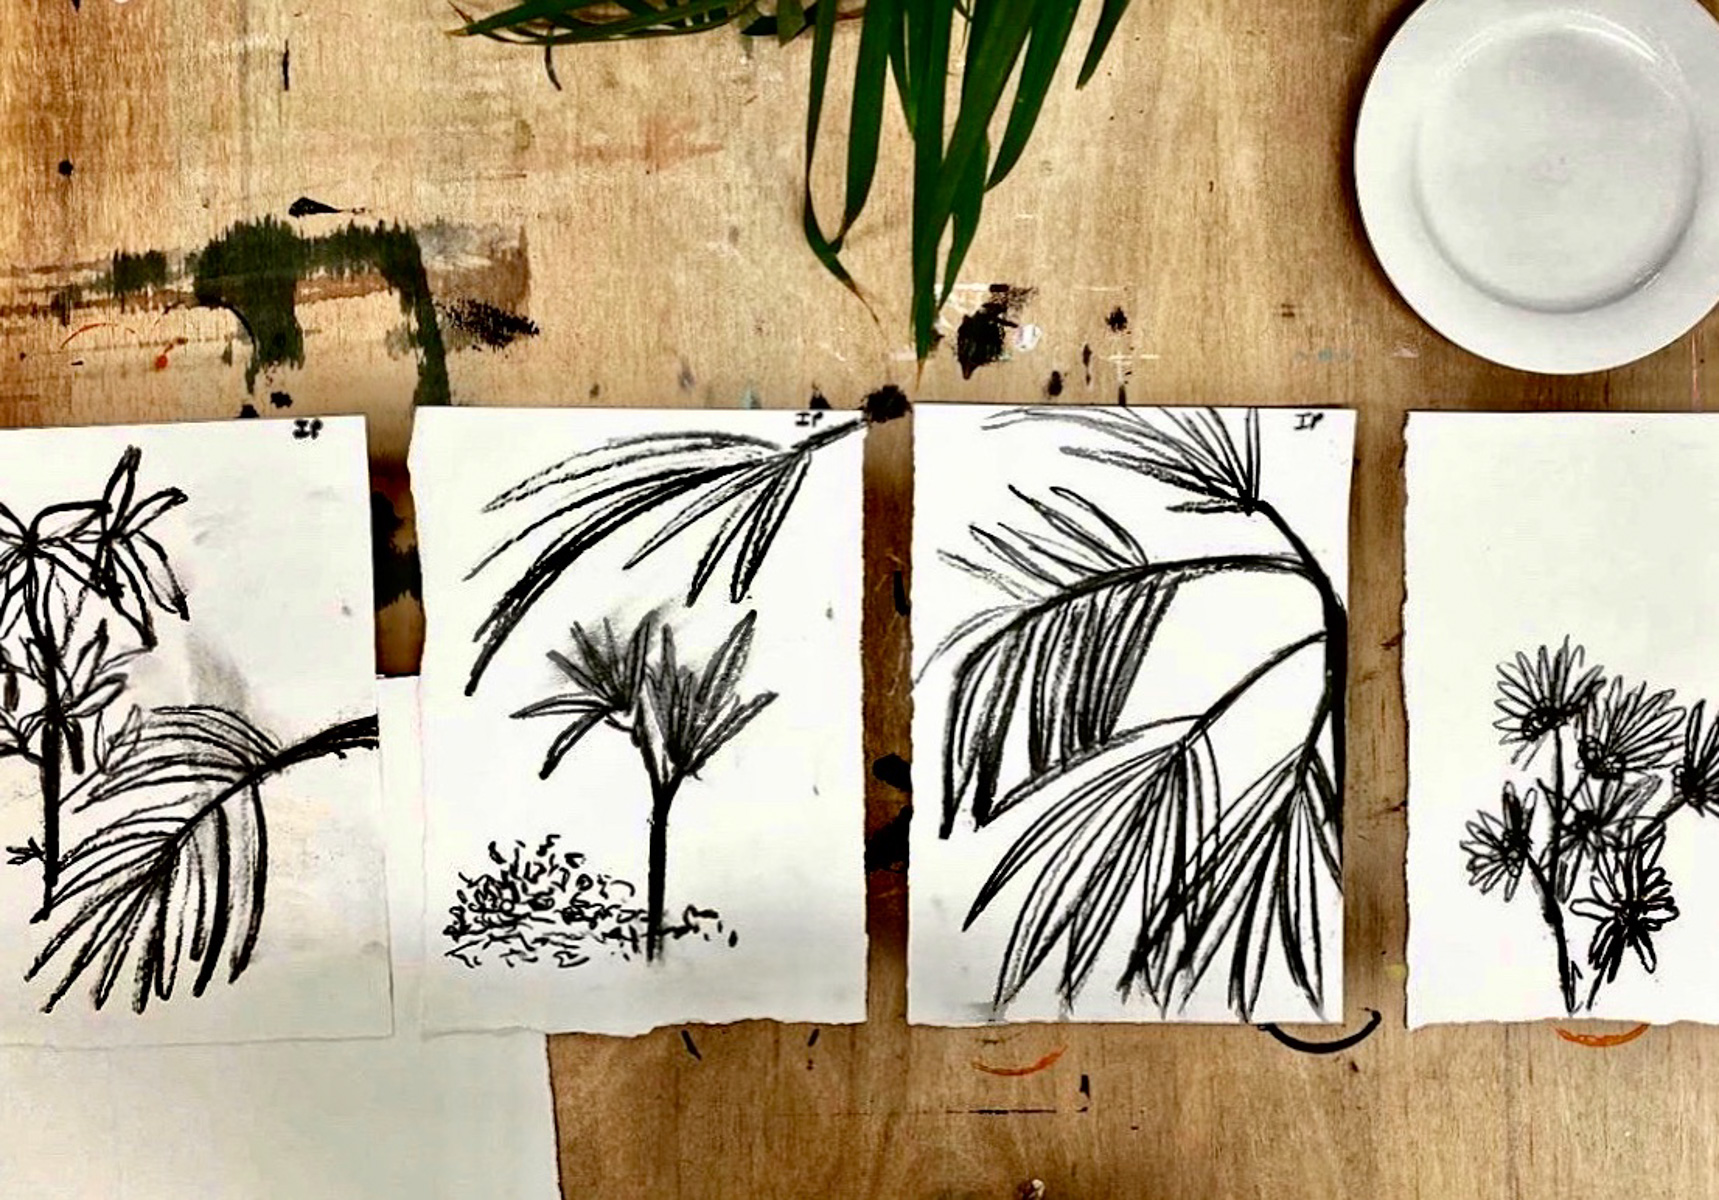 Charcoal Japanese inspired drawings